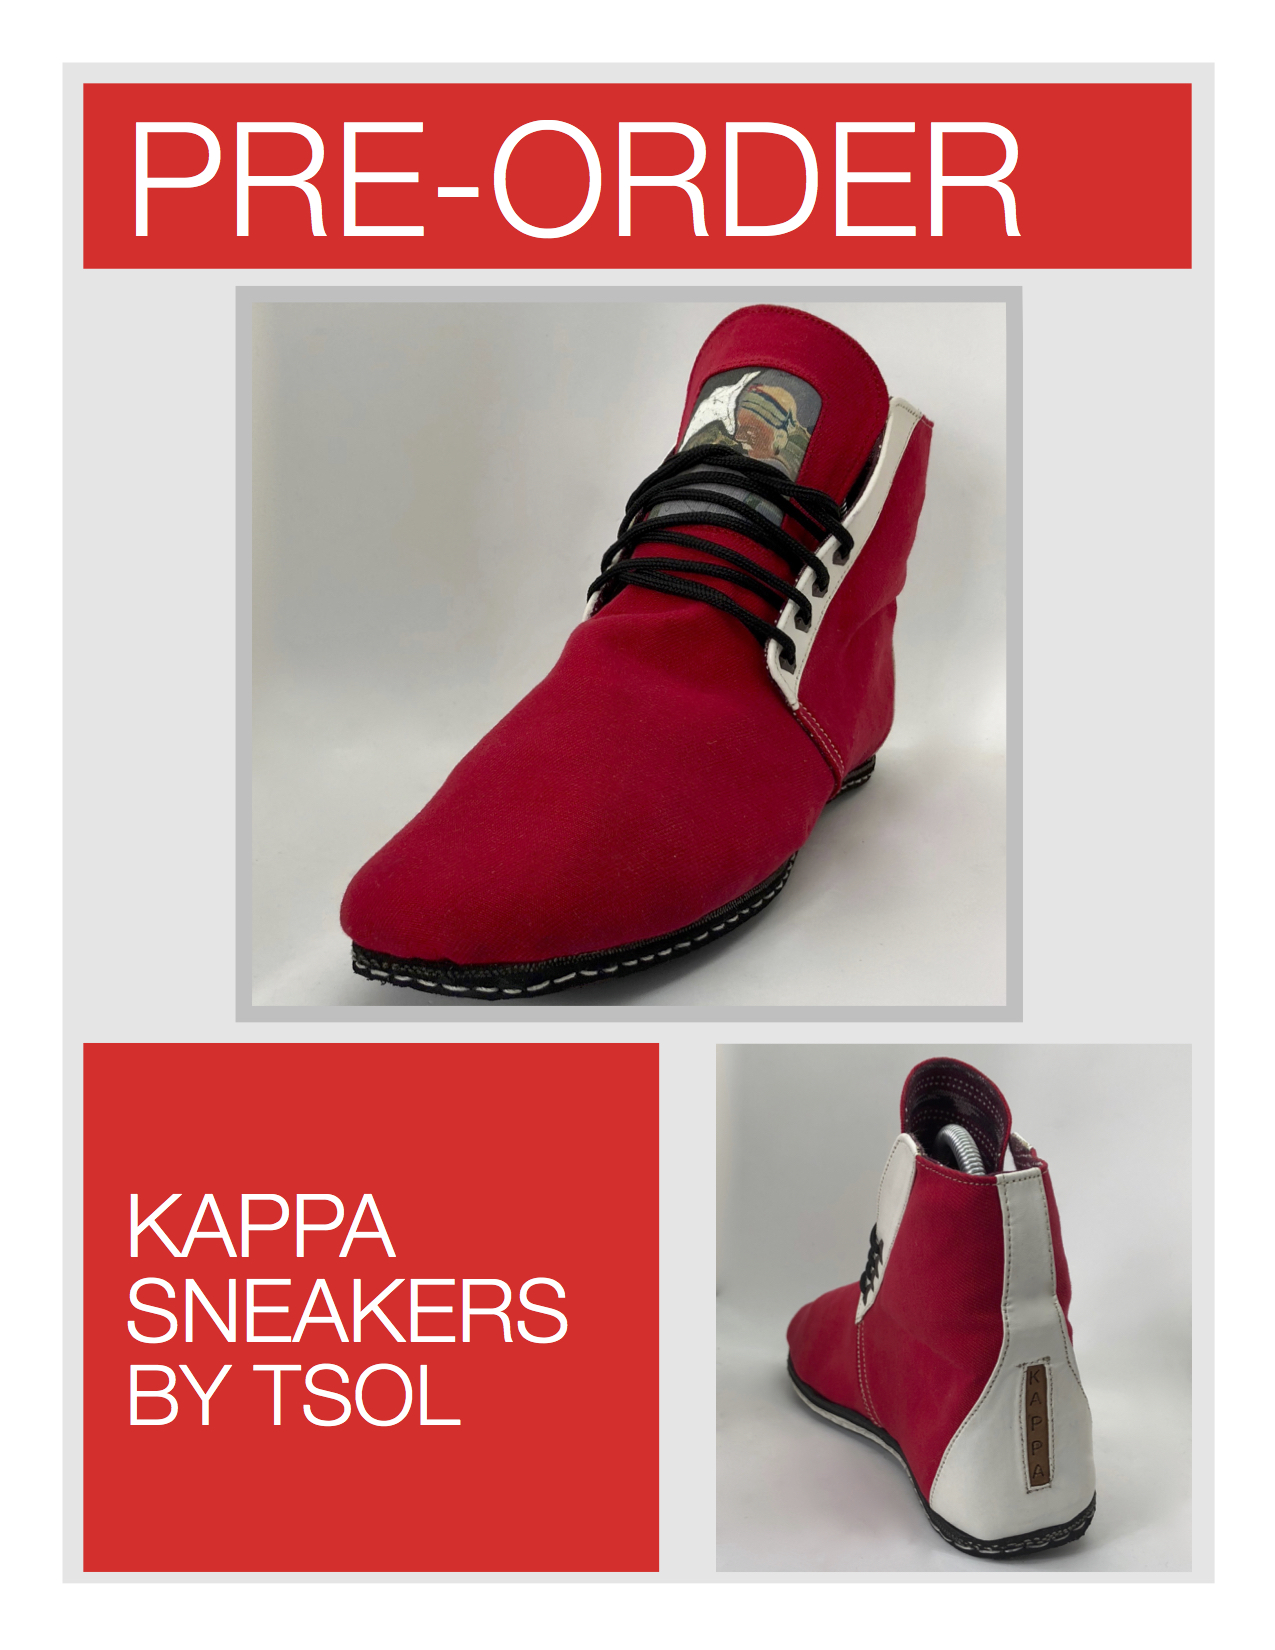 KAPPA Fraternity Sneakers by tsoL apparel - STEP IN COMFORTtsoL apparel's Tribute Series